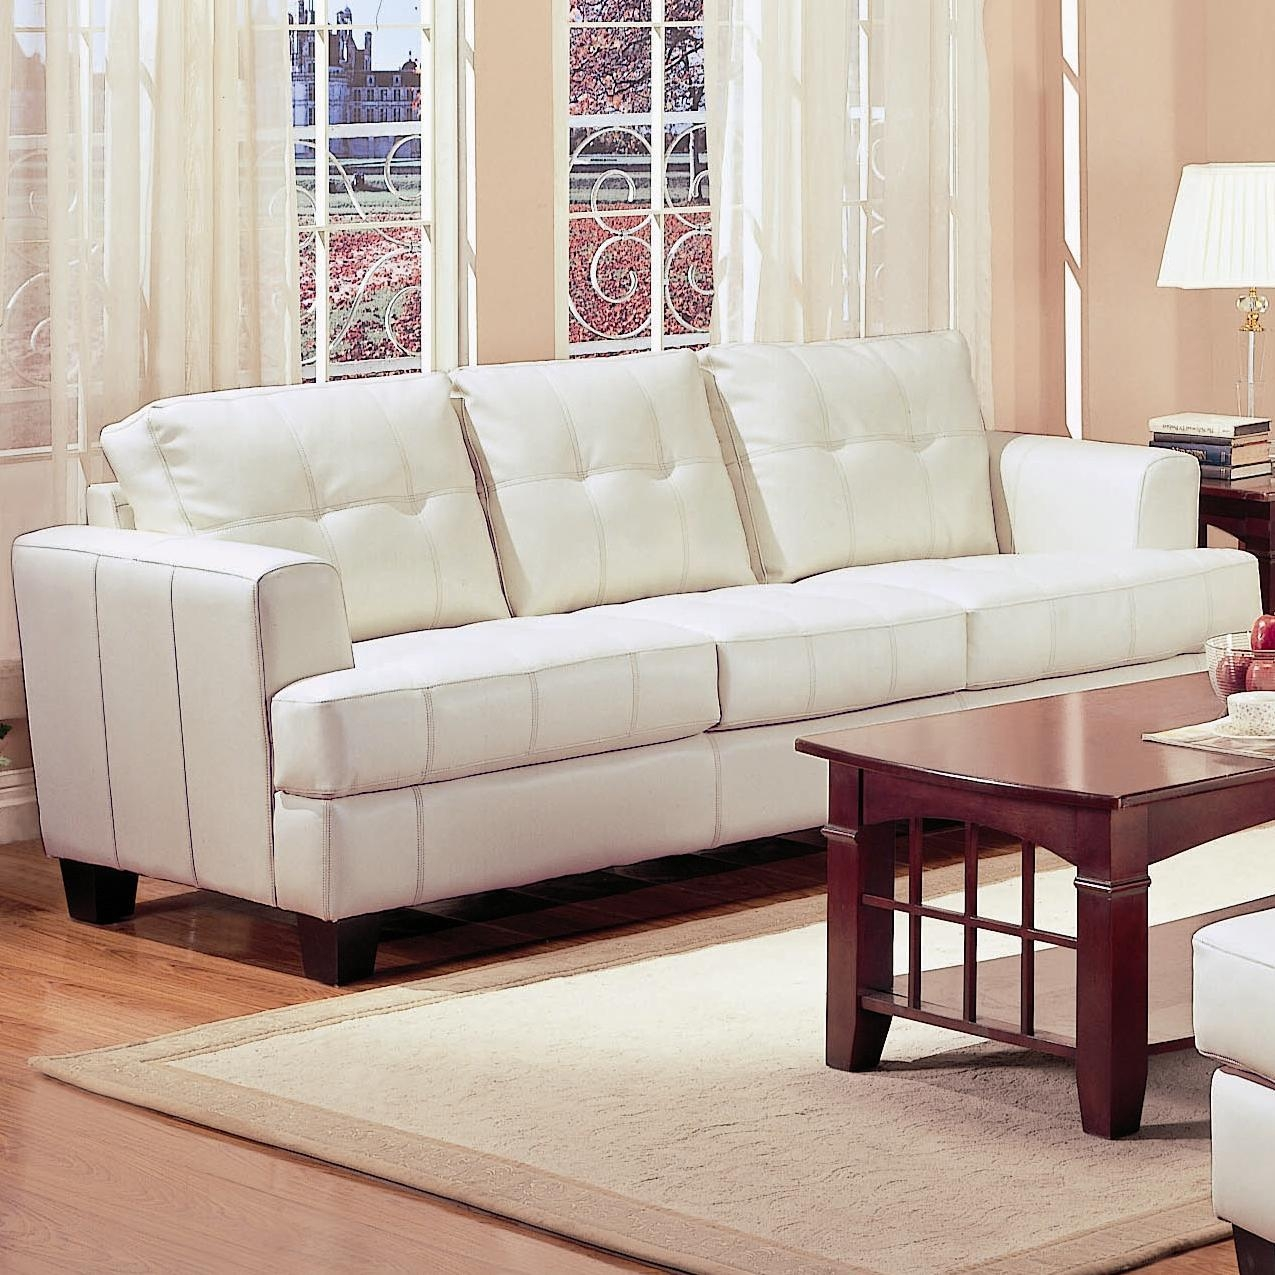 Samuel Beige Leather Sofa – Steal A Sofa Furniture Outlet Los Regarding Beige Leather Couches (Image 18 of 20)